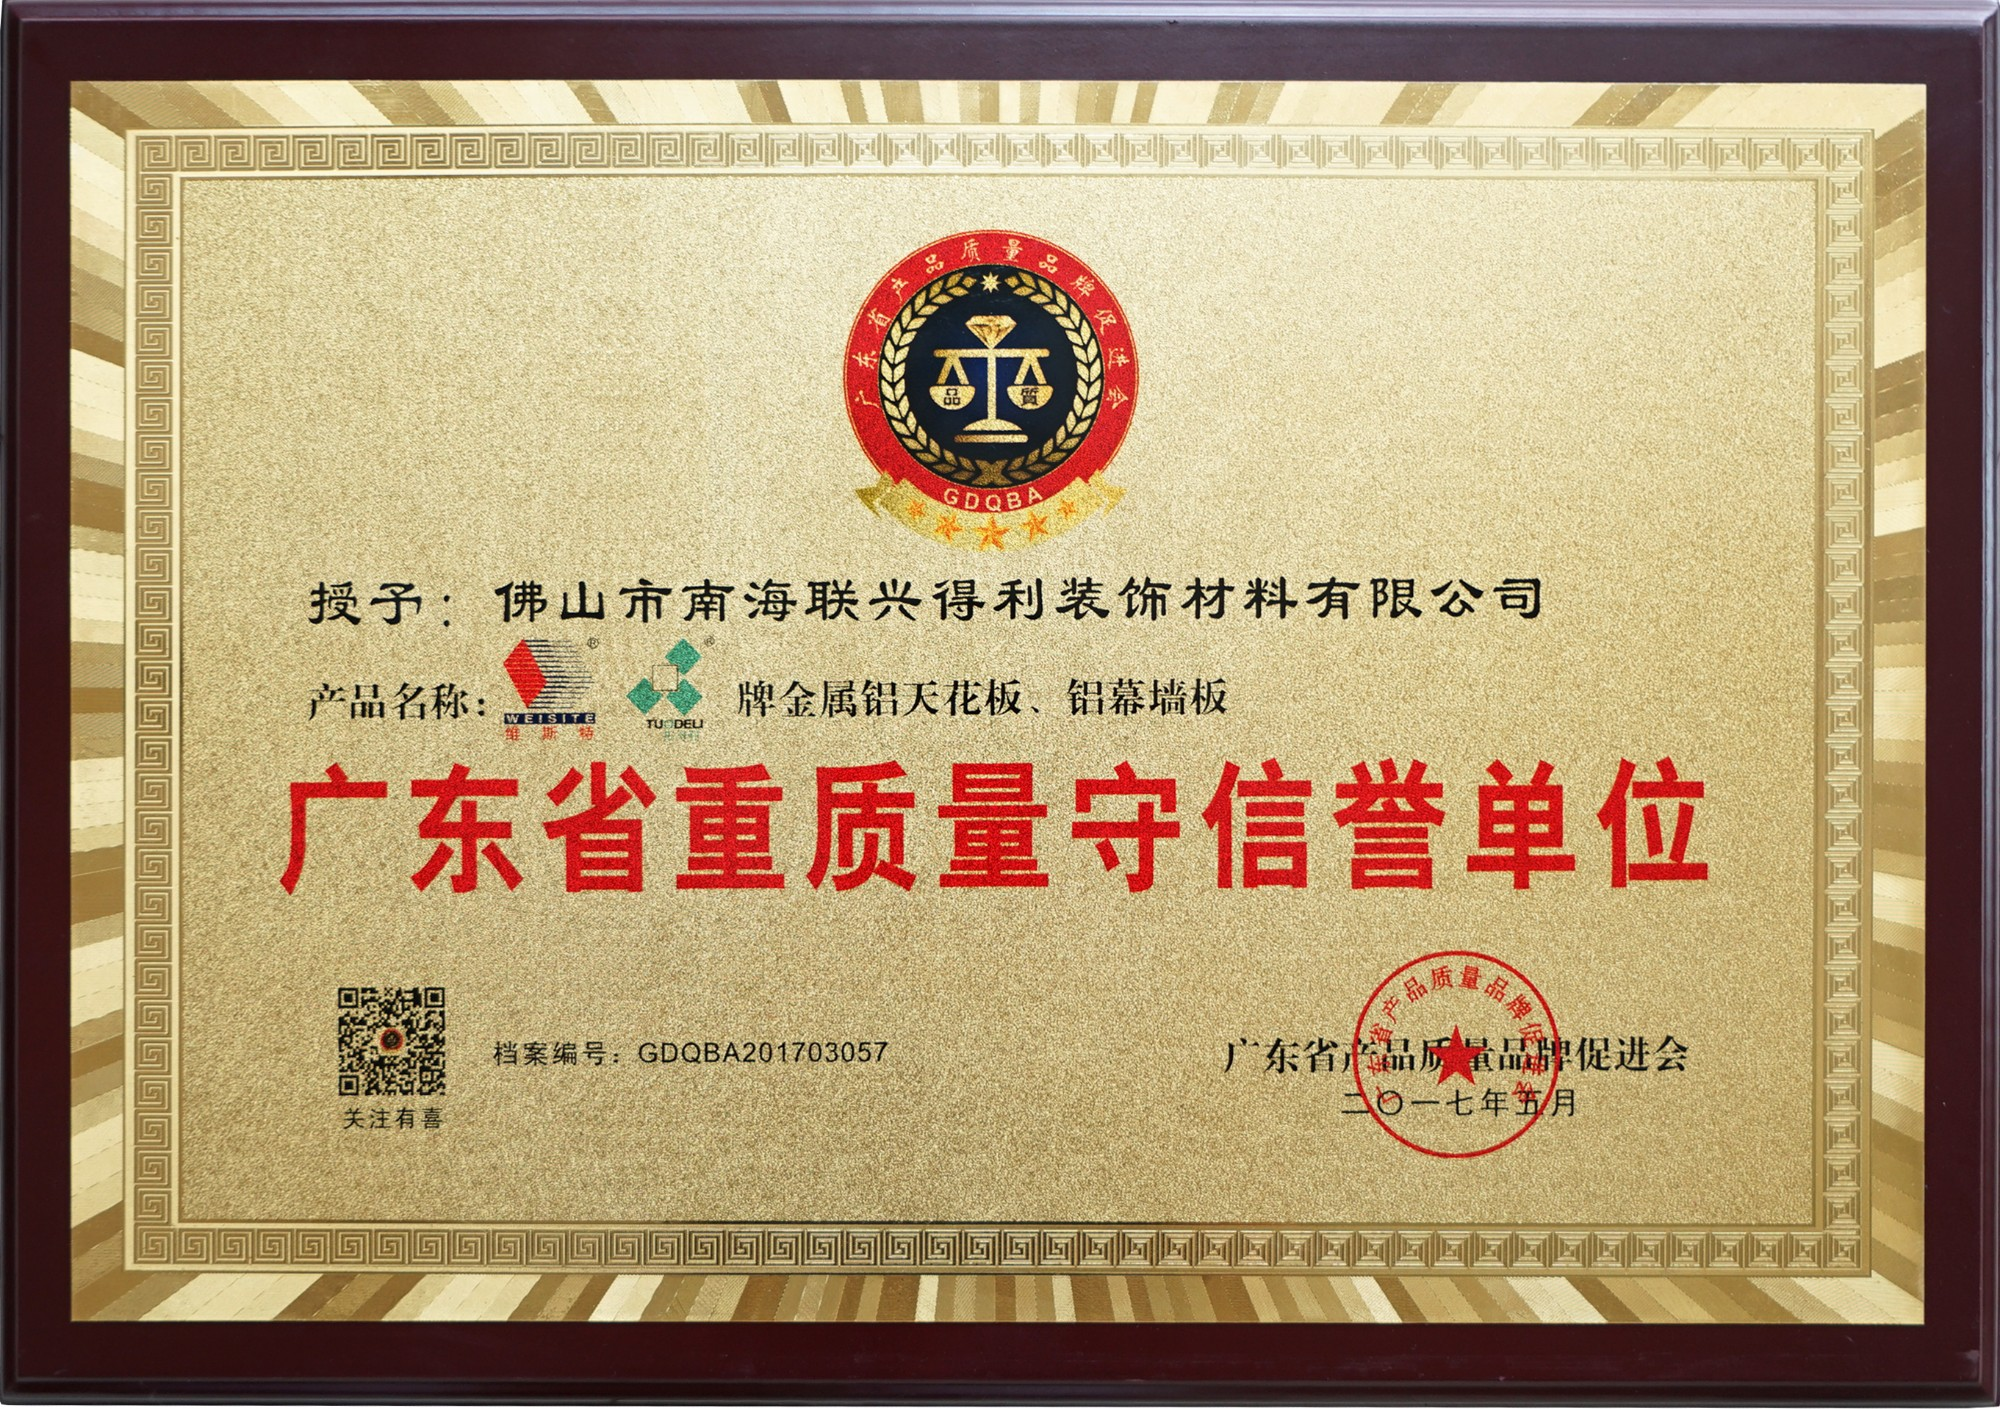 Guangdong Provincial Quality-oriented and Reputation-based Enterprises